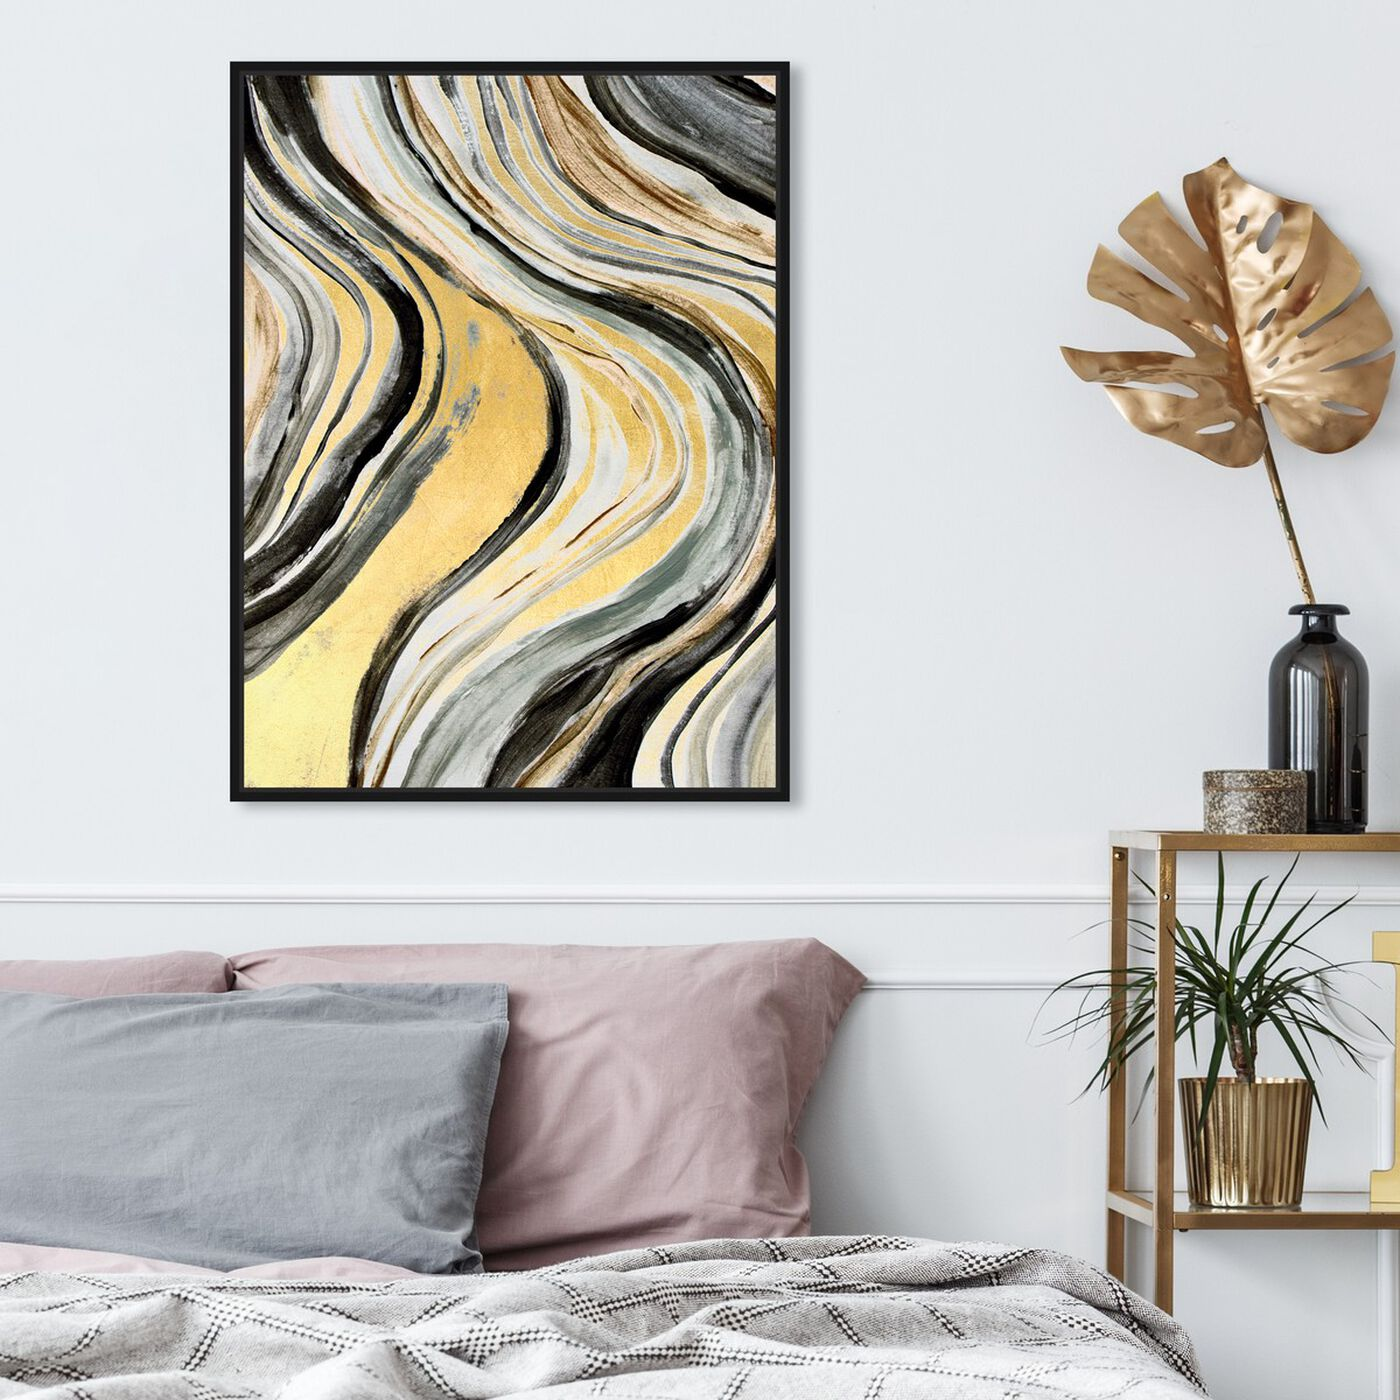 Hanging view of Golden Geode Flow featuring abstract and paint art.